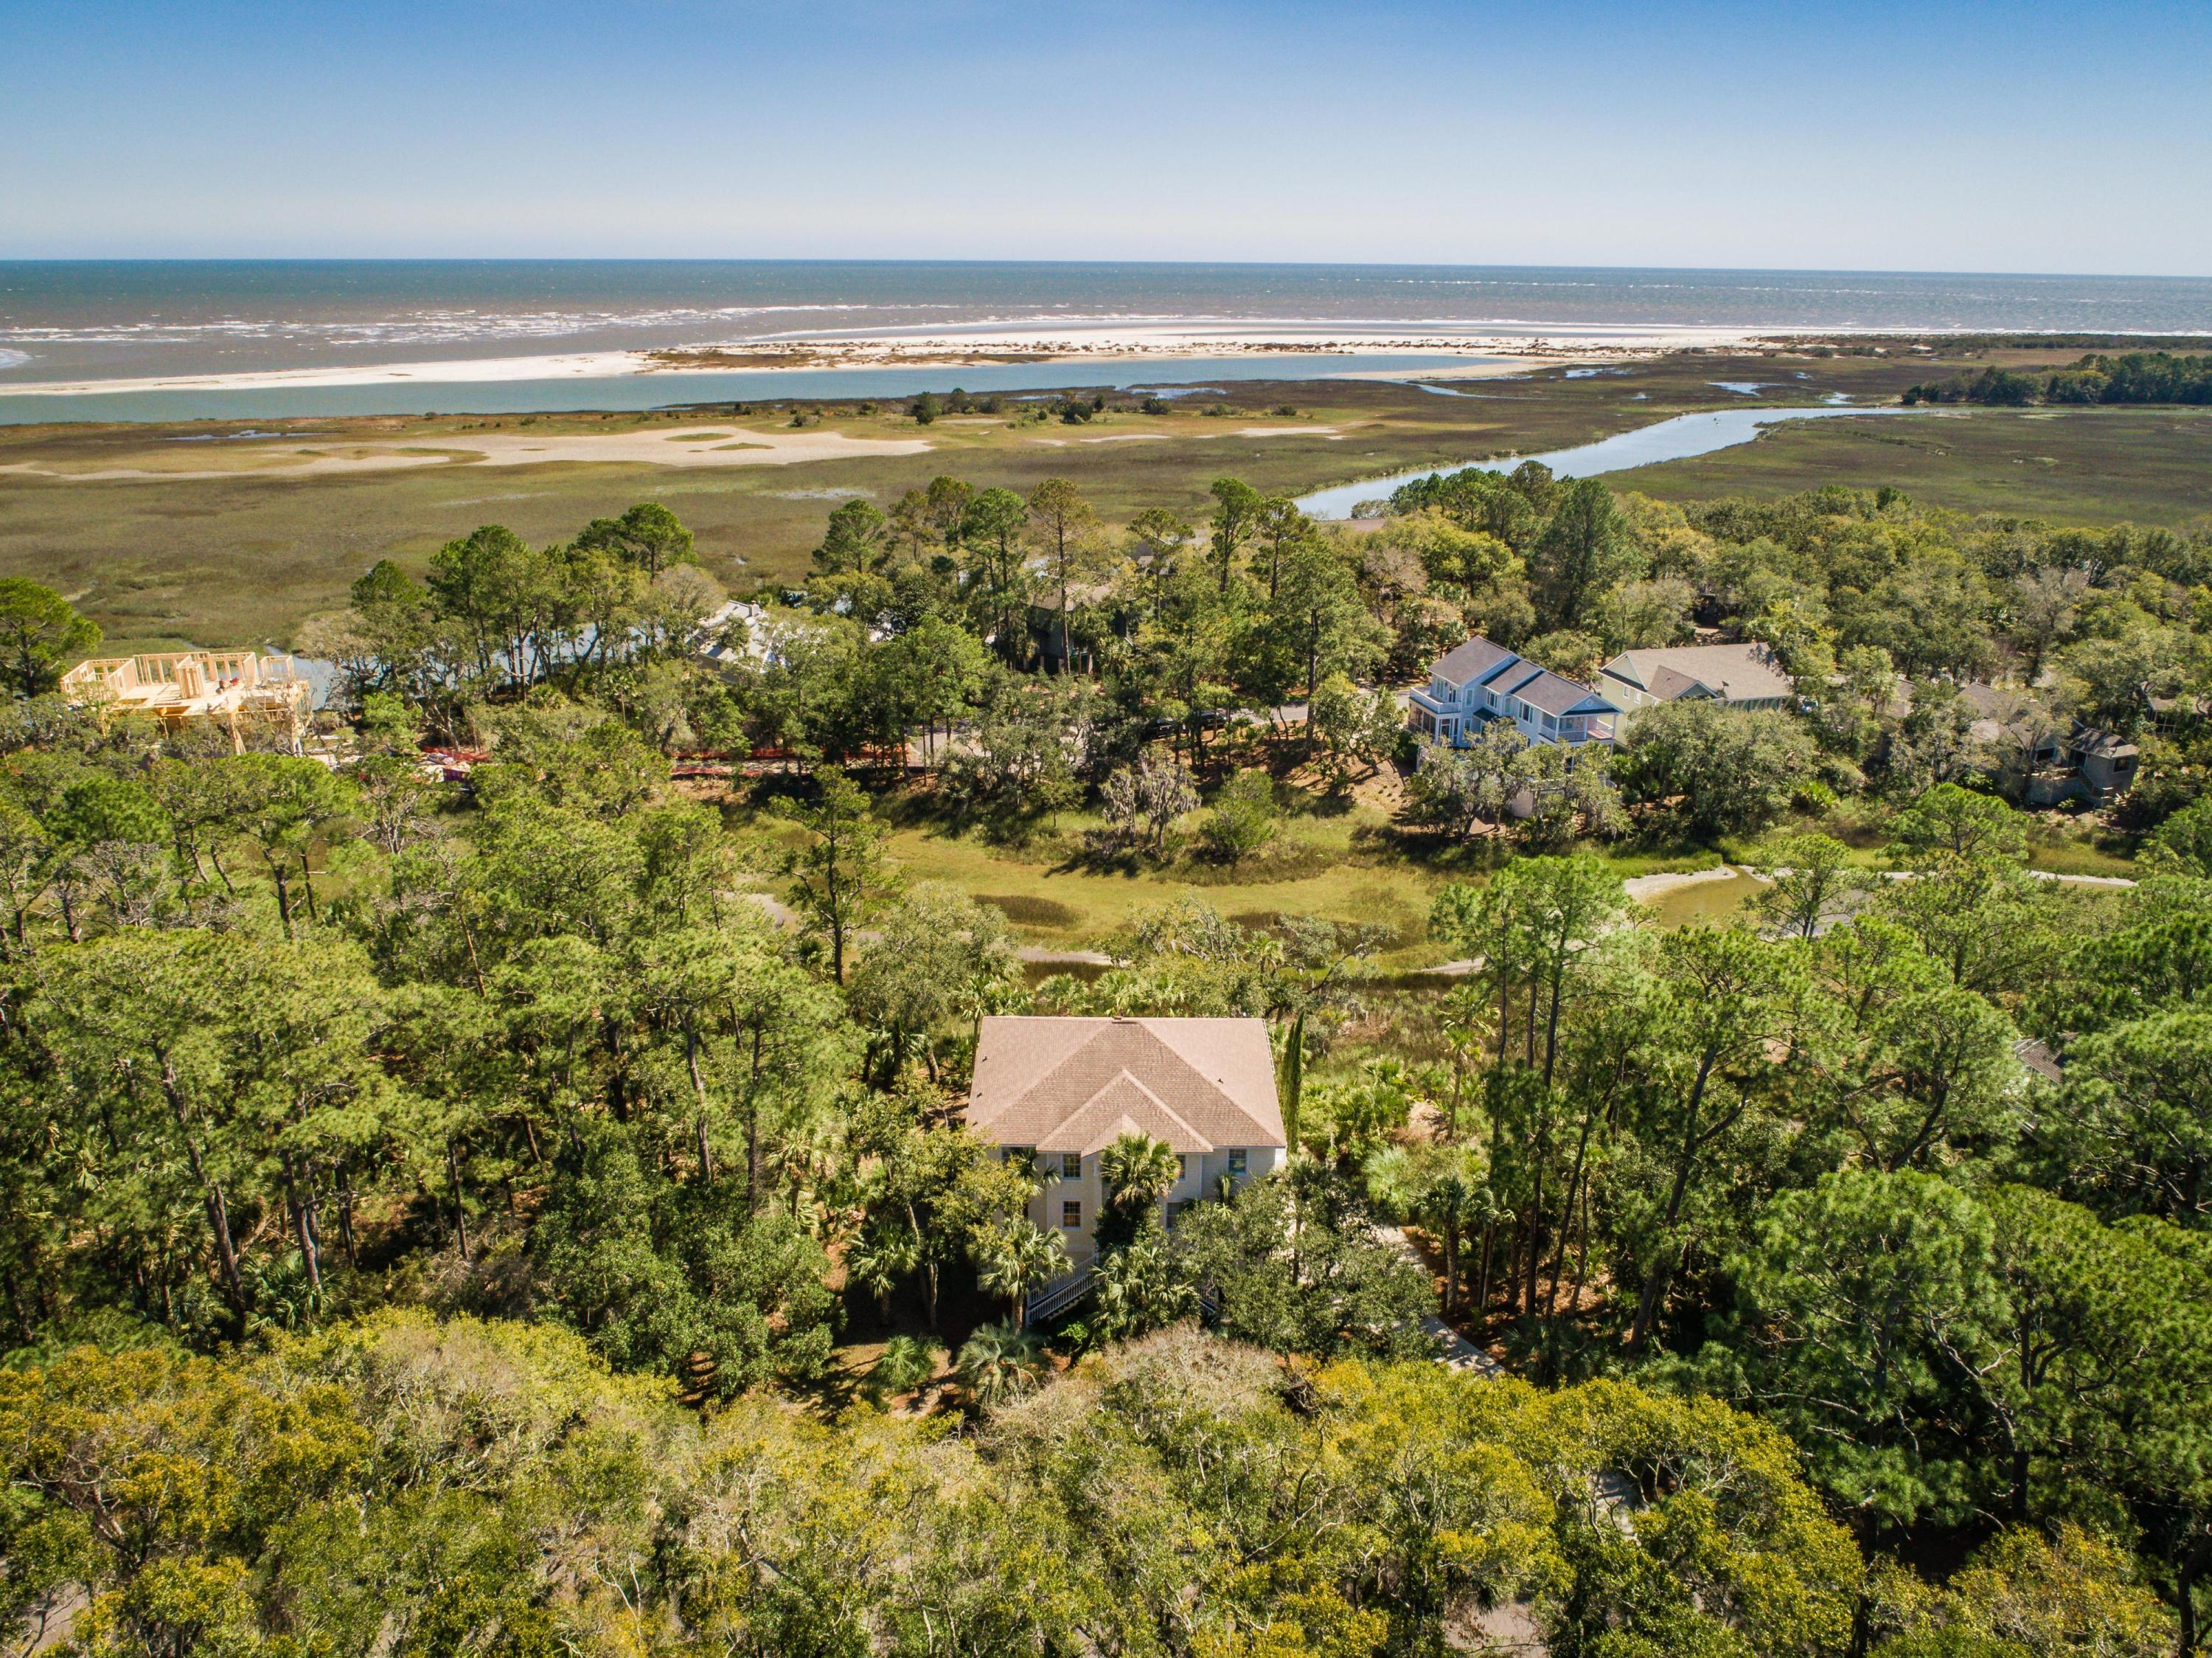 Seabrook Island Homes For Sale - 2957 Deer Point, Seabrook Island, SC - 62